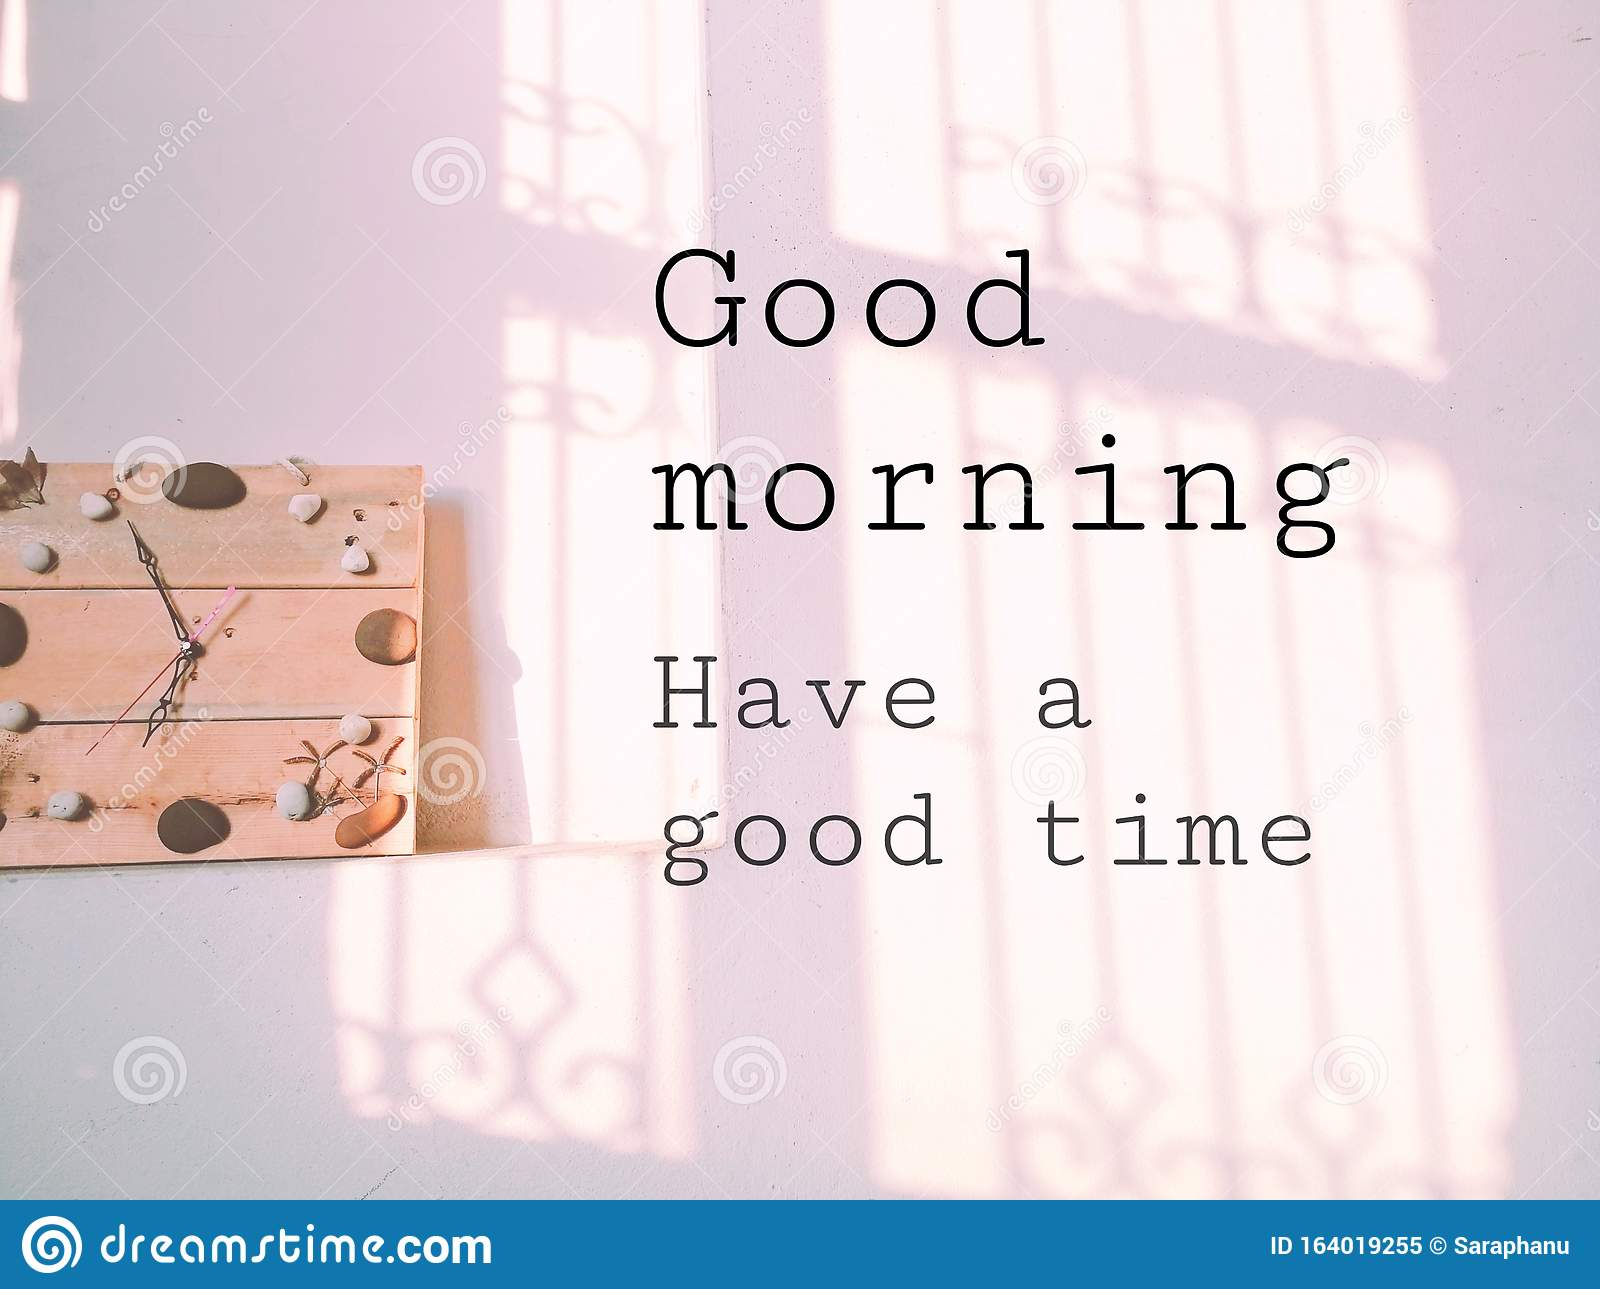 Good morning, have a good time.